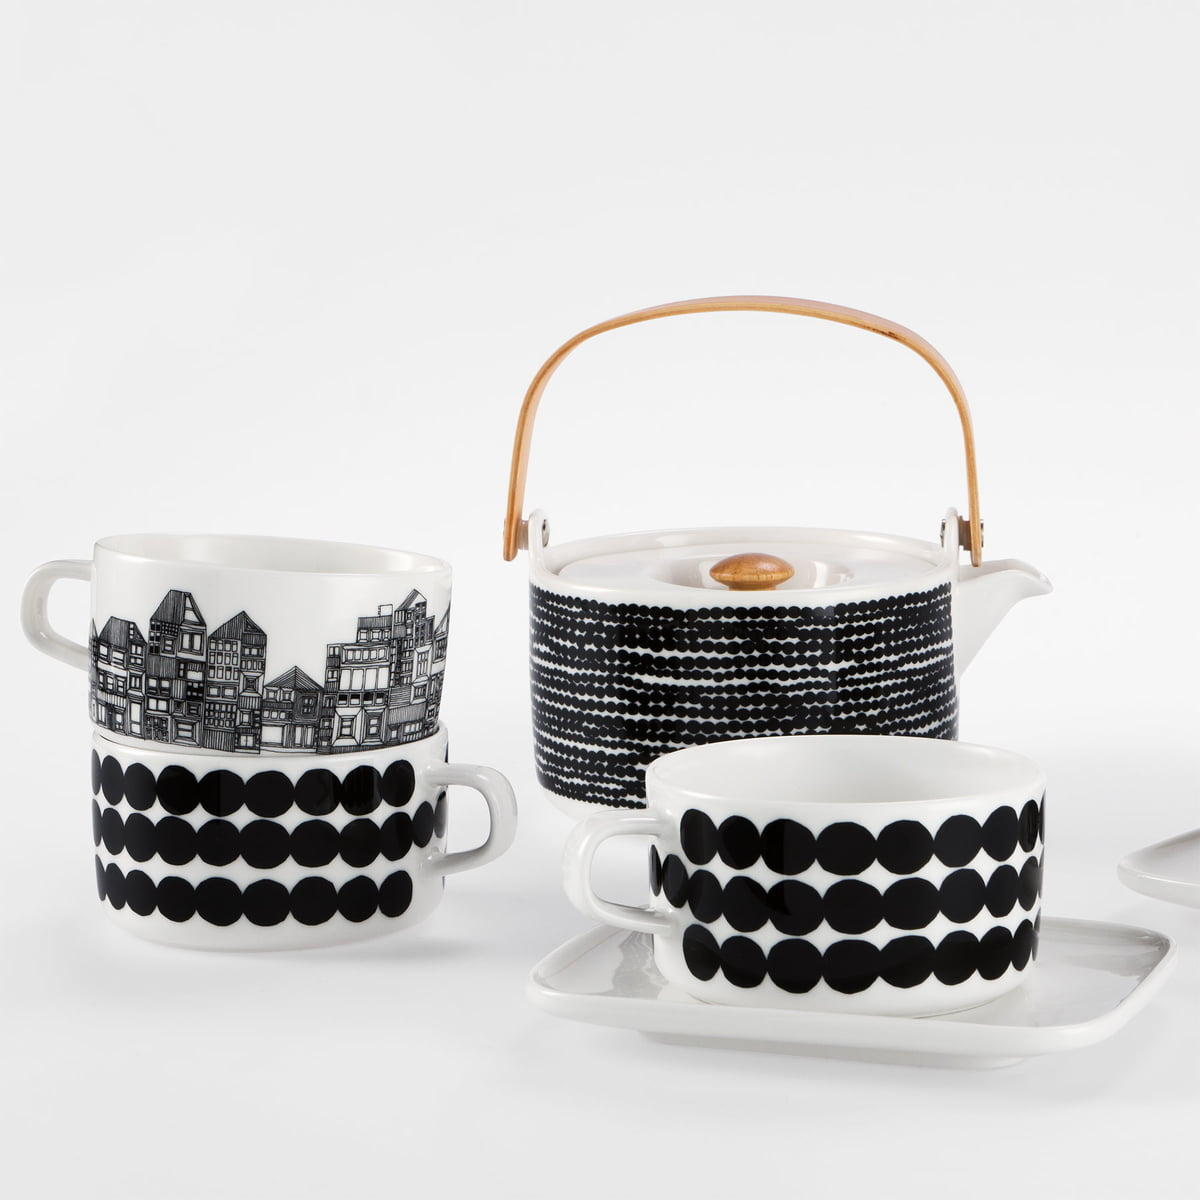 The Oiva R 228 Symatto Bowl From Marimekko In The Shop